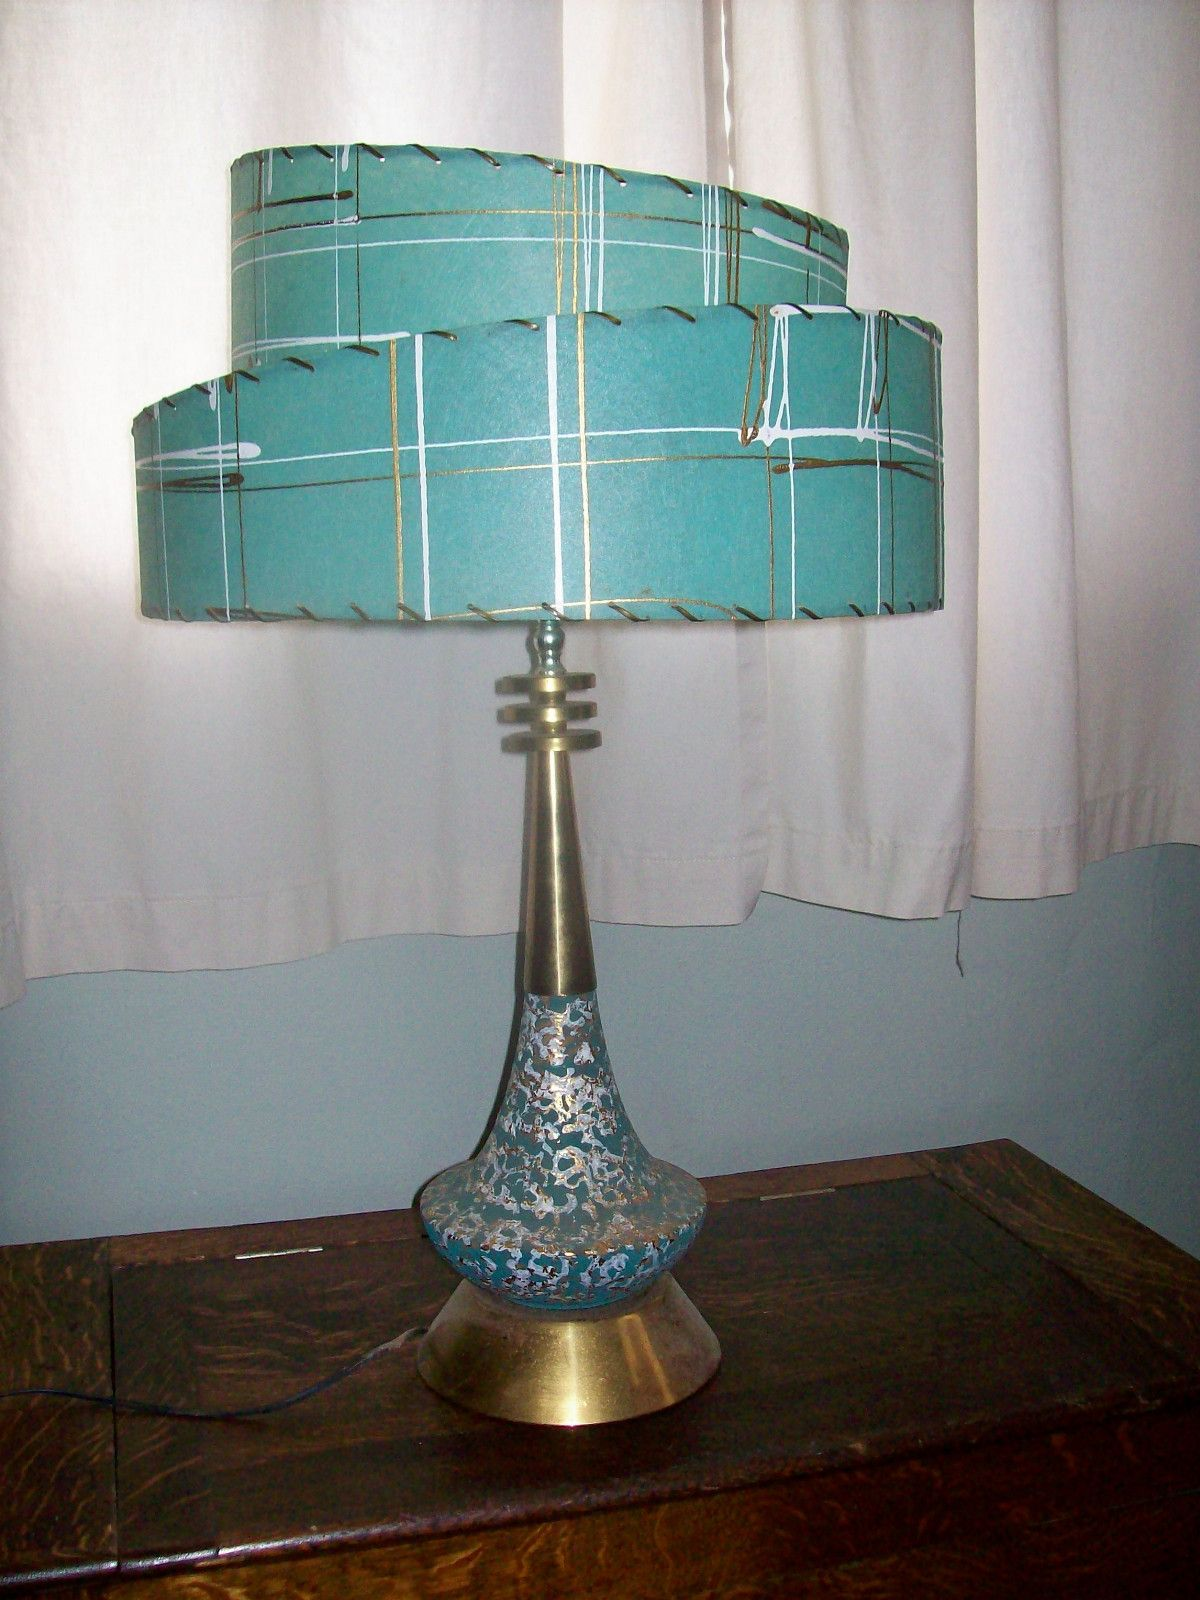 House Table Lamp Fantastic Vintage Mid Century Modern Table Lamp 2 Tier